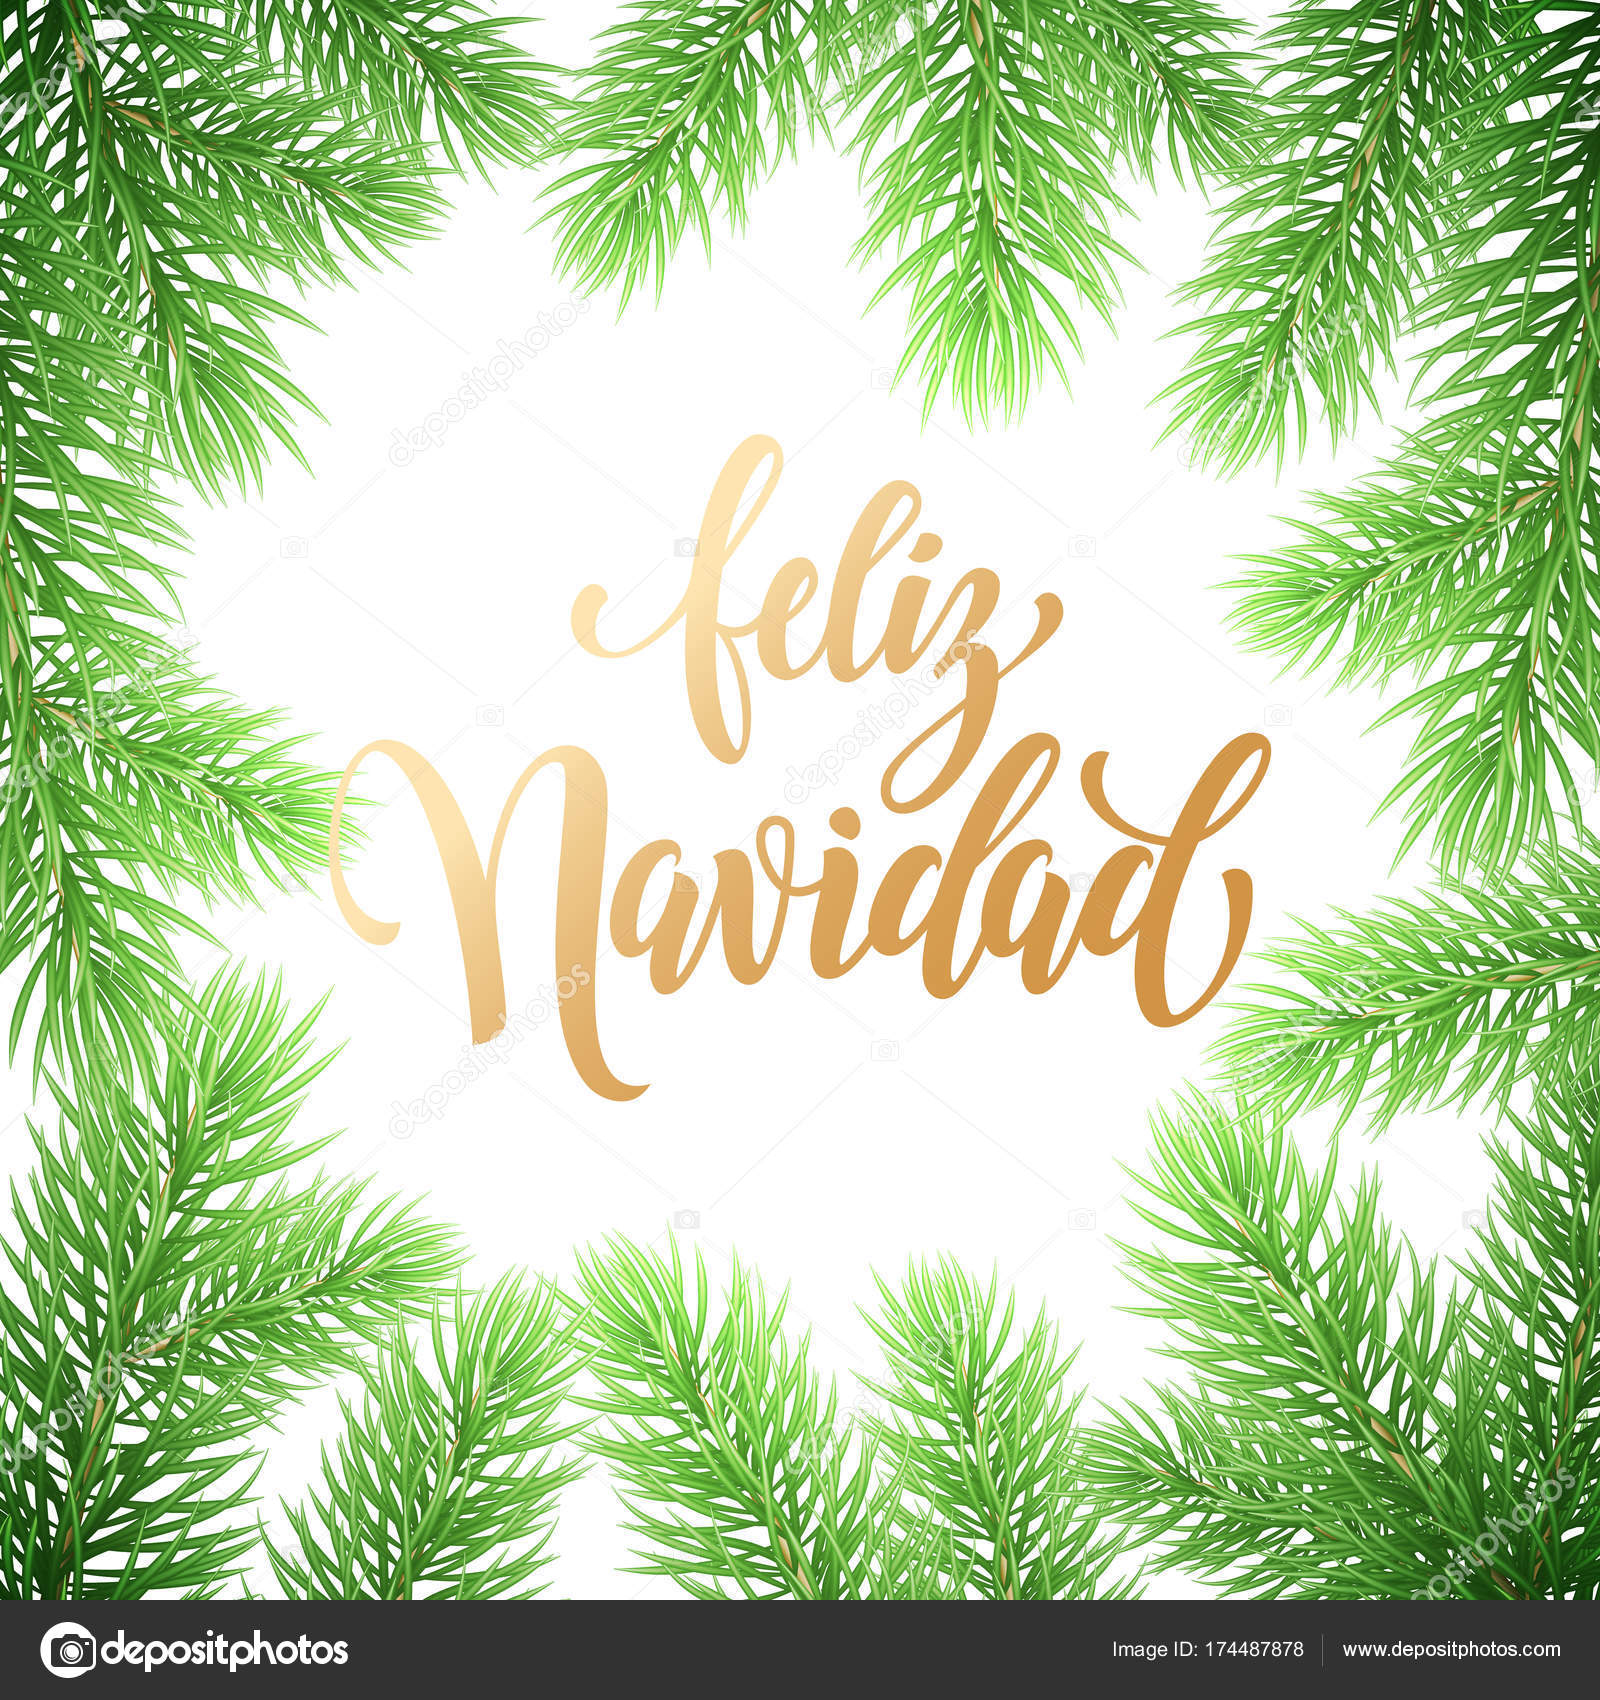 Feliz navidad spanish merry christmas hand drawn golden feliz navidad spanish merry christmas hand drawn golden calligraphy in fir branch wreath decoration and christmas kristyandbryce Images